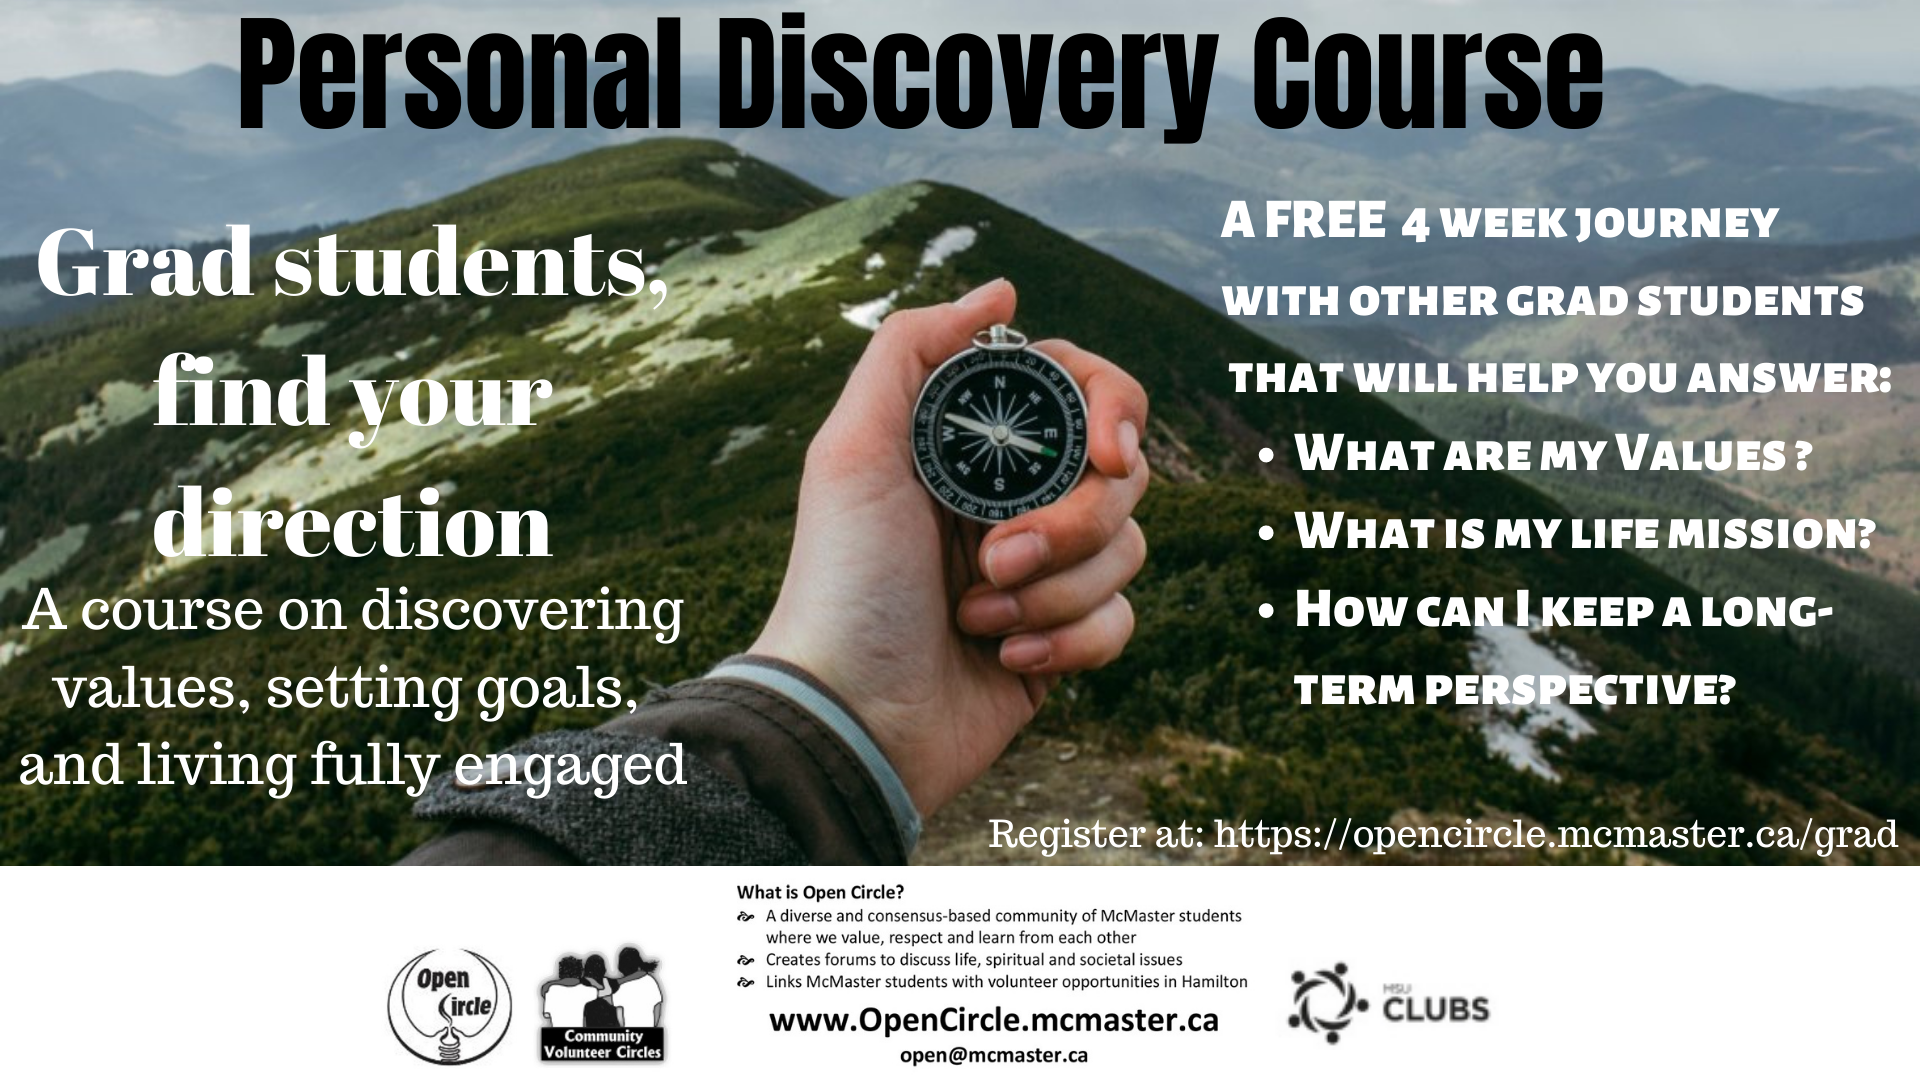 Personal Discovery Course for Grad Students